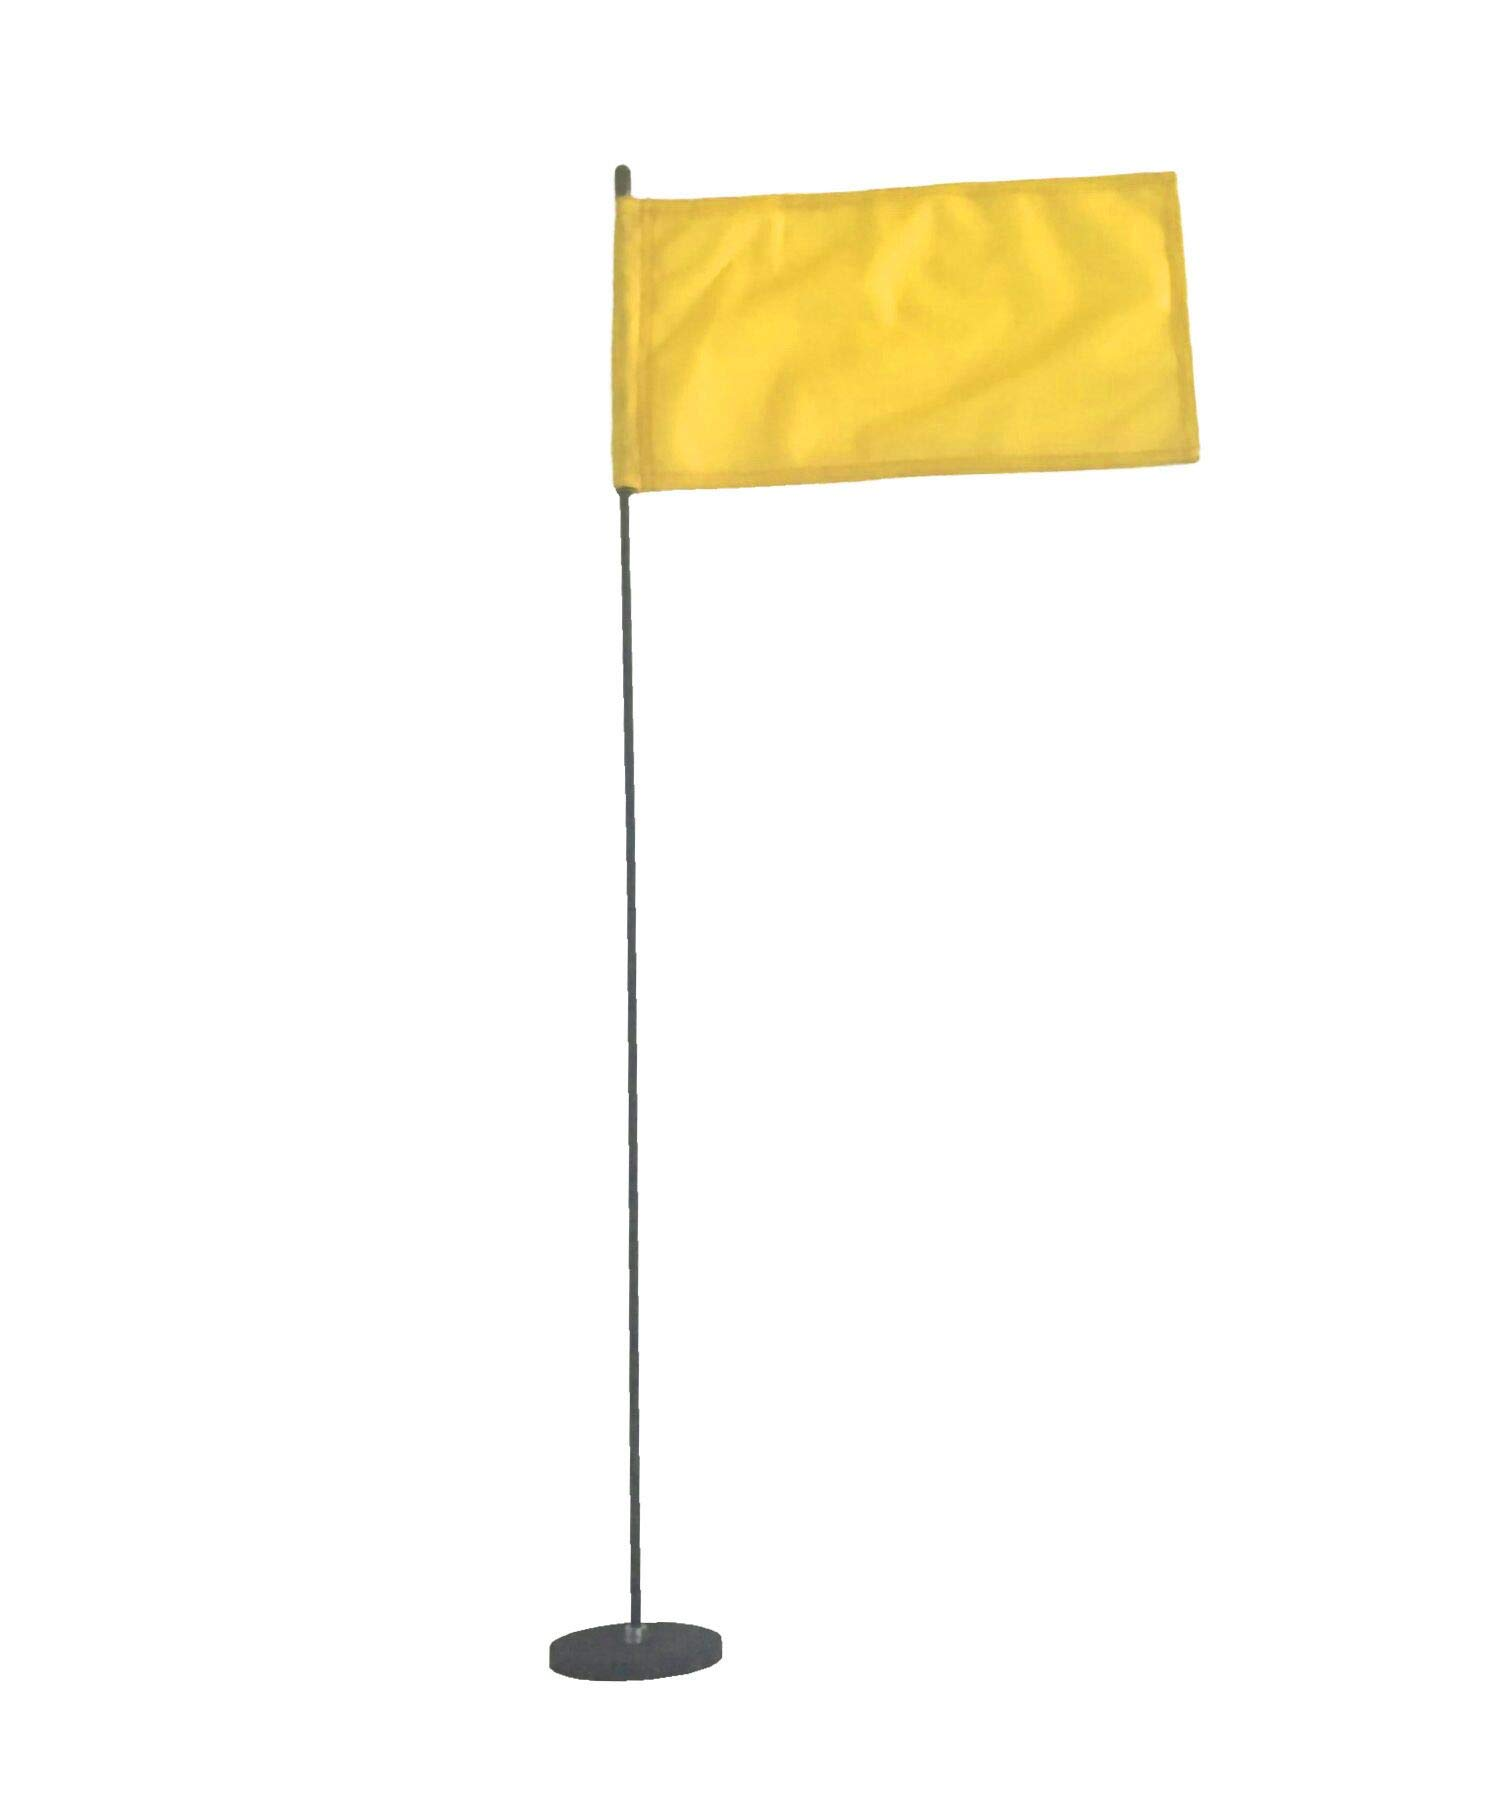 Magnetic Base Flag Holder 3 FT. Steel Pole - Hold Force 44 lbs. - 8 x 13 Yellow Flag